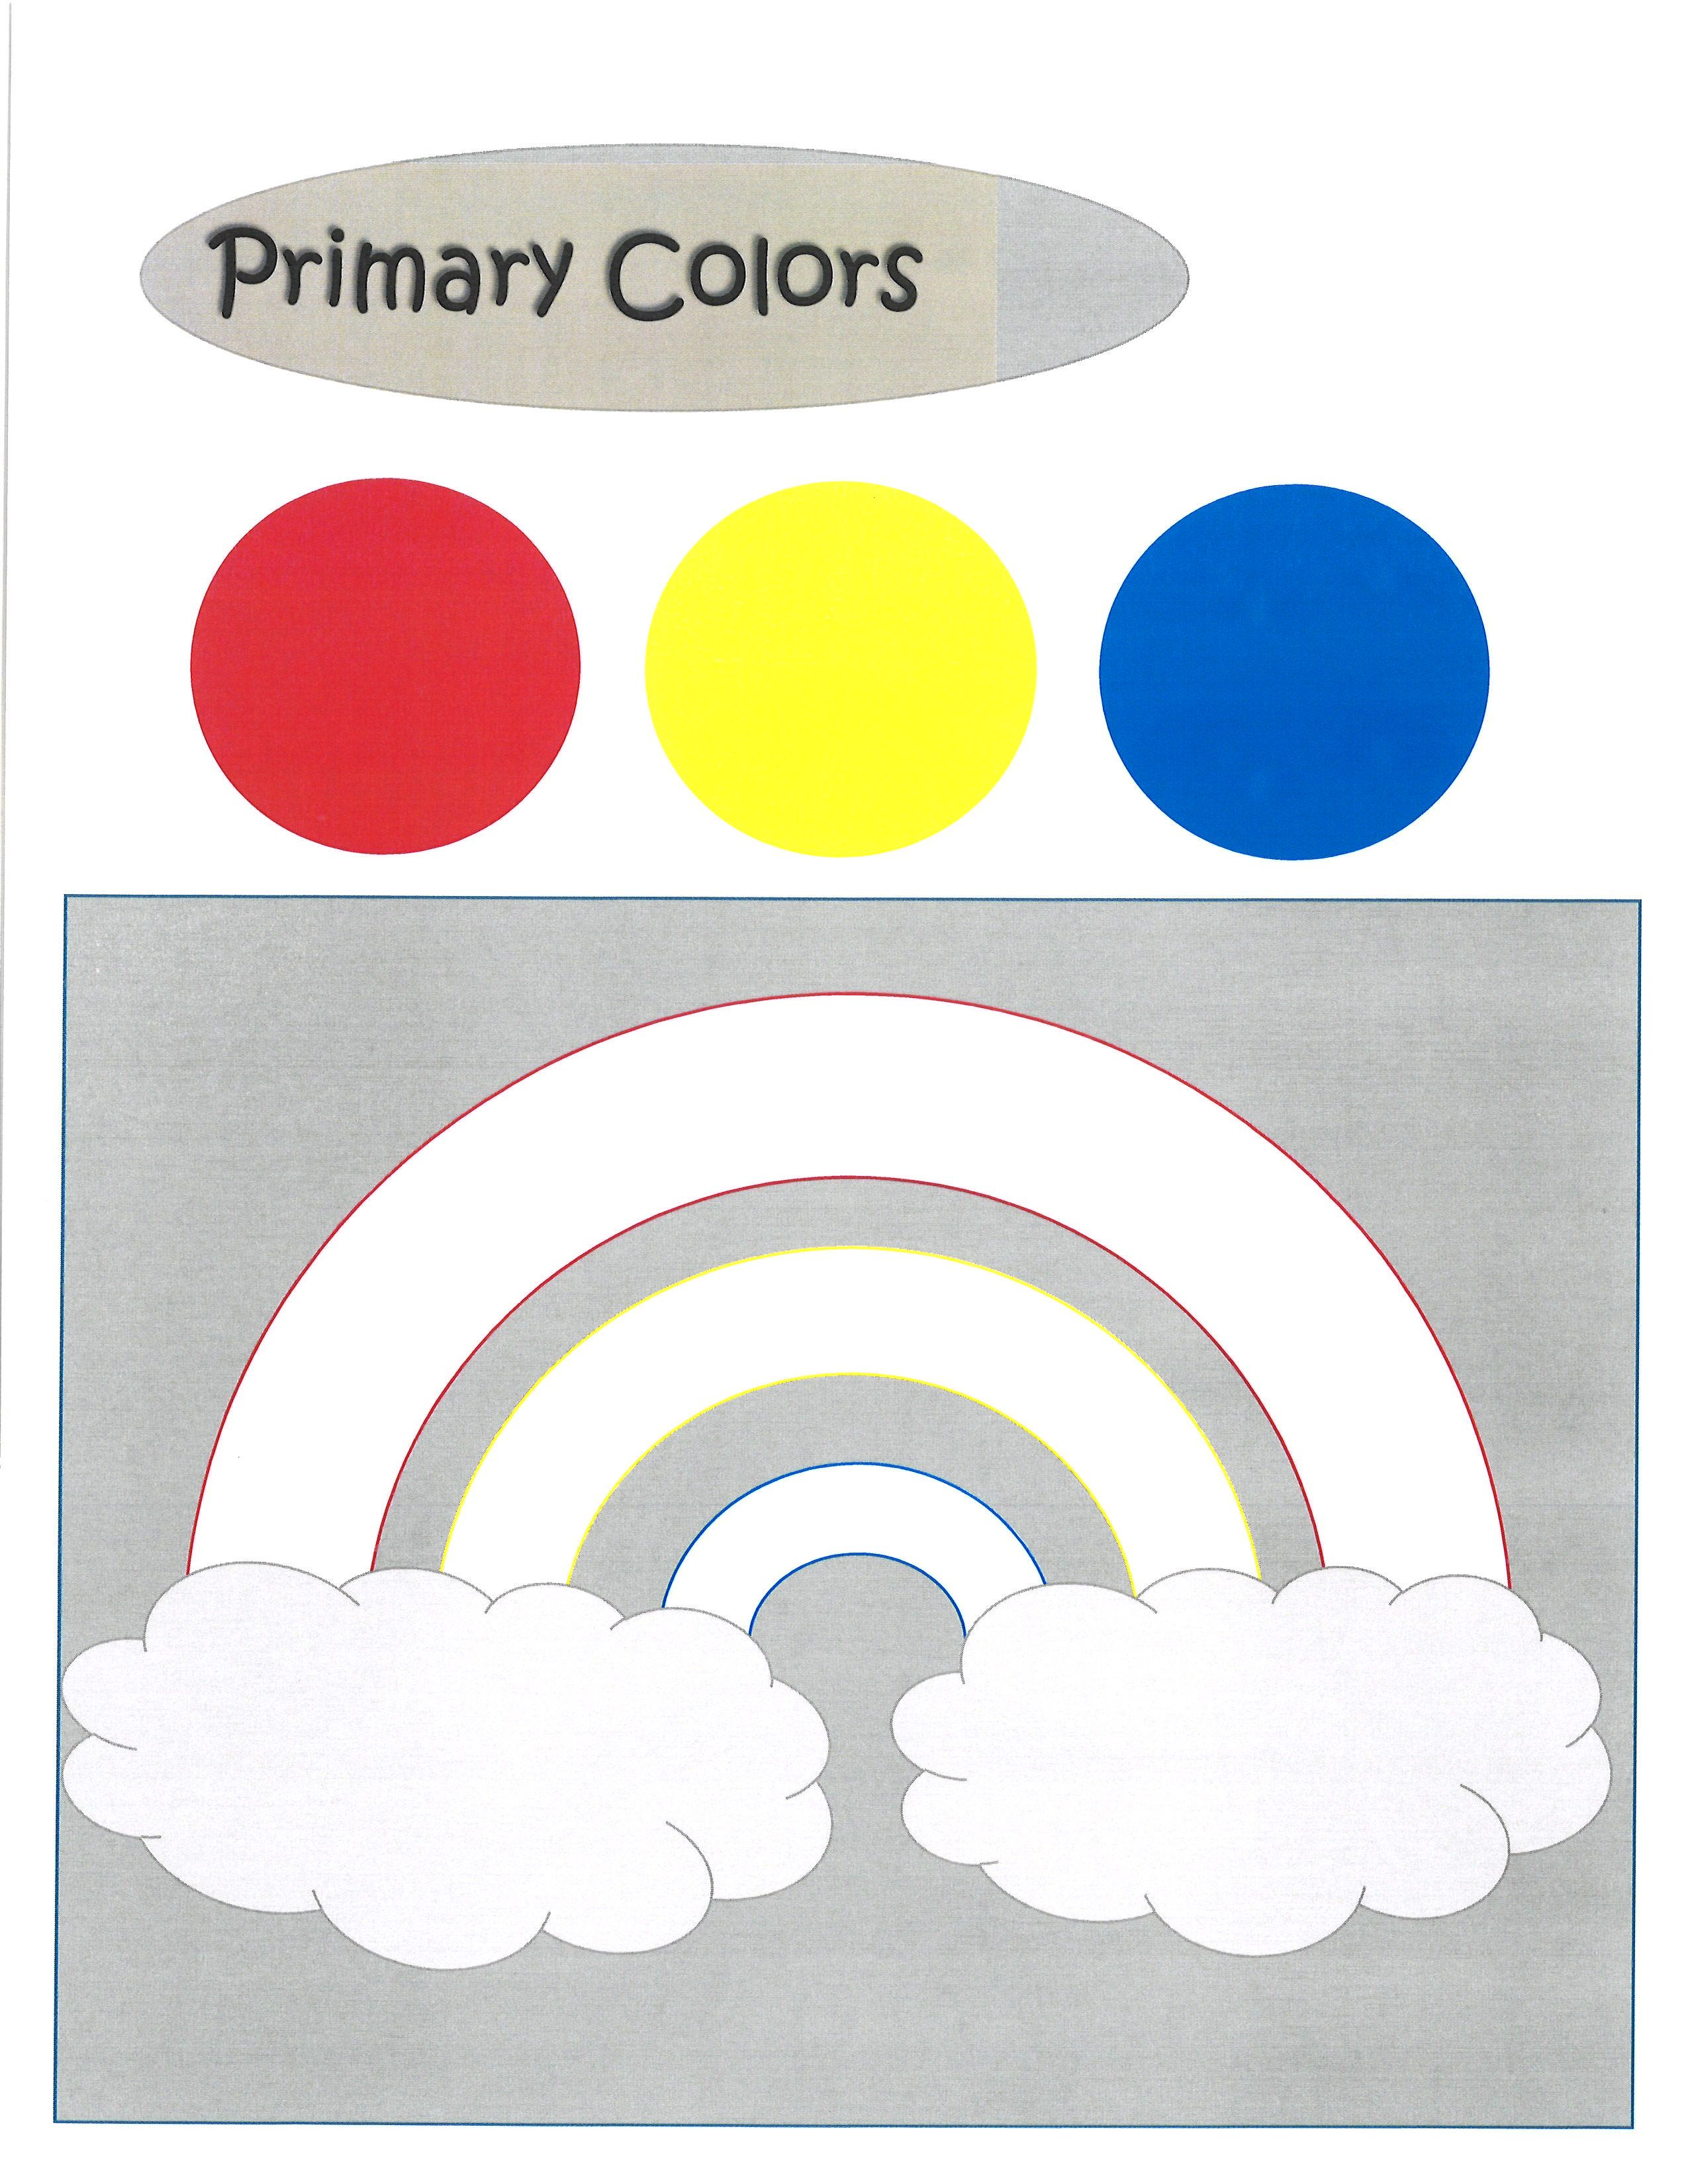 Primary Color Worksheet And Coloring Page